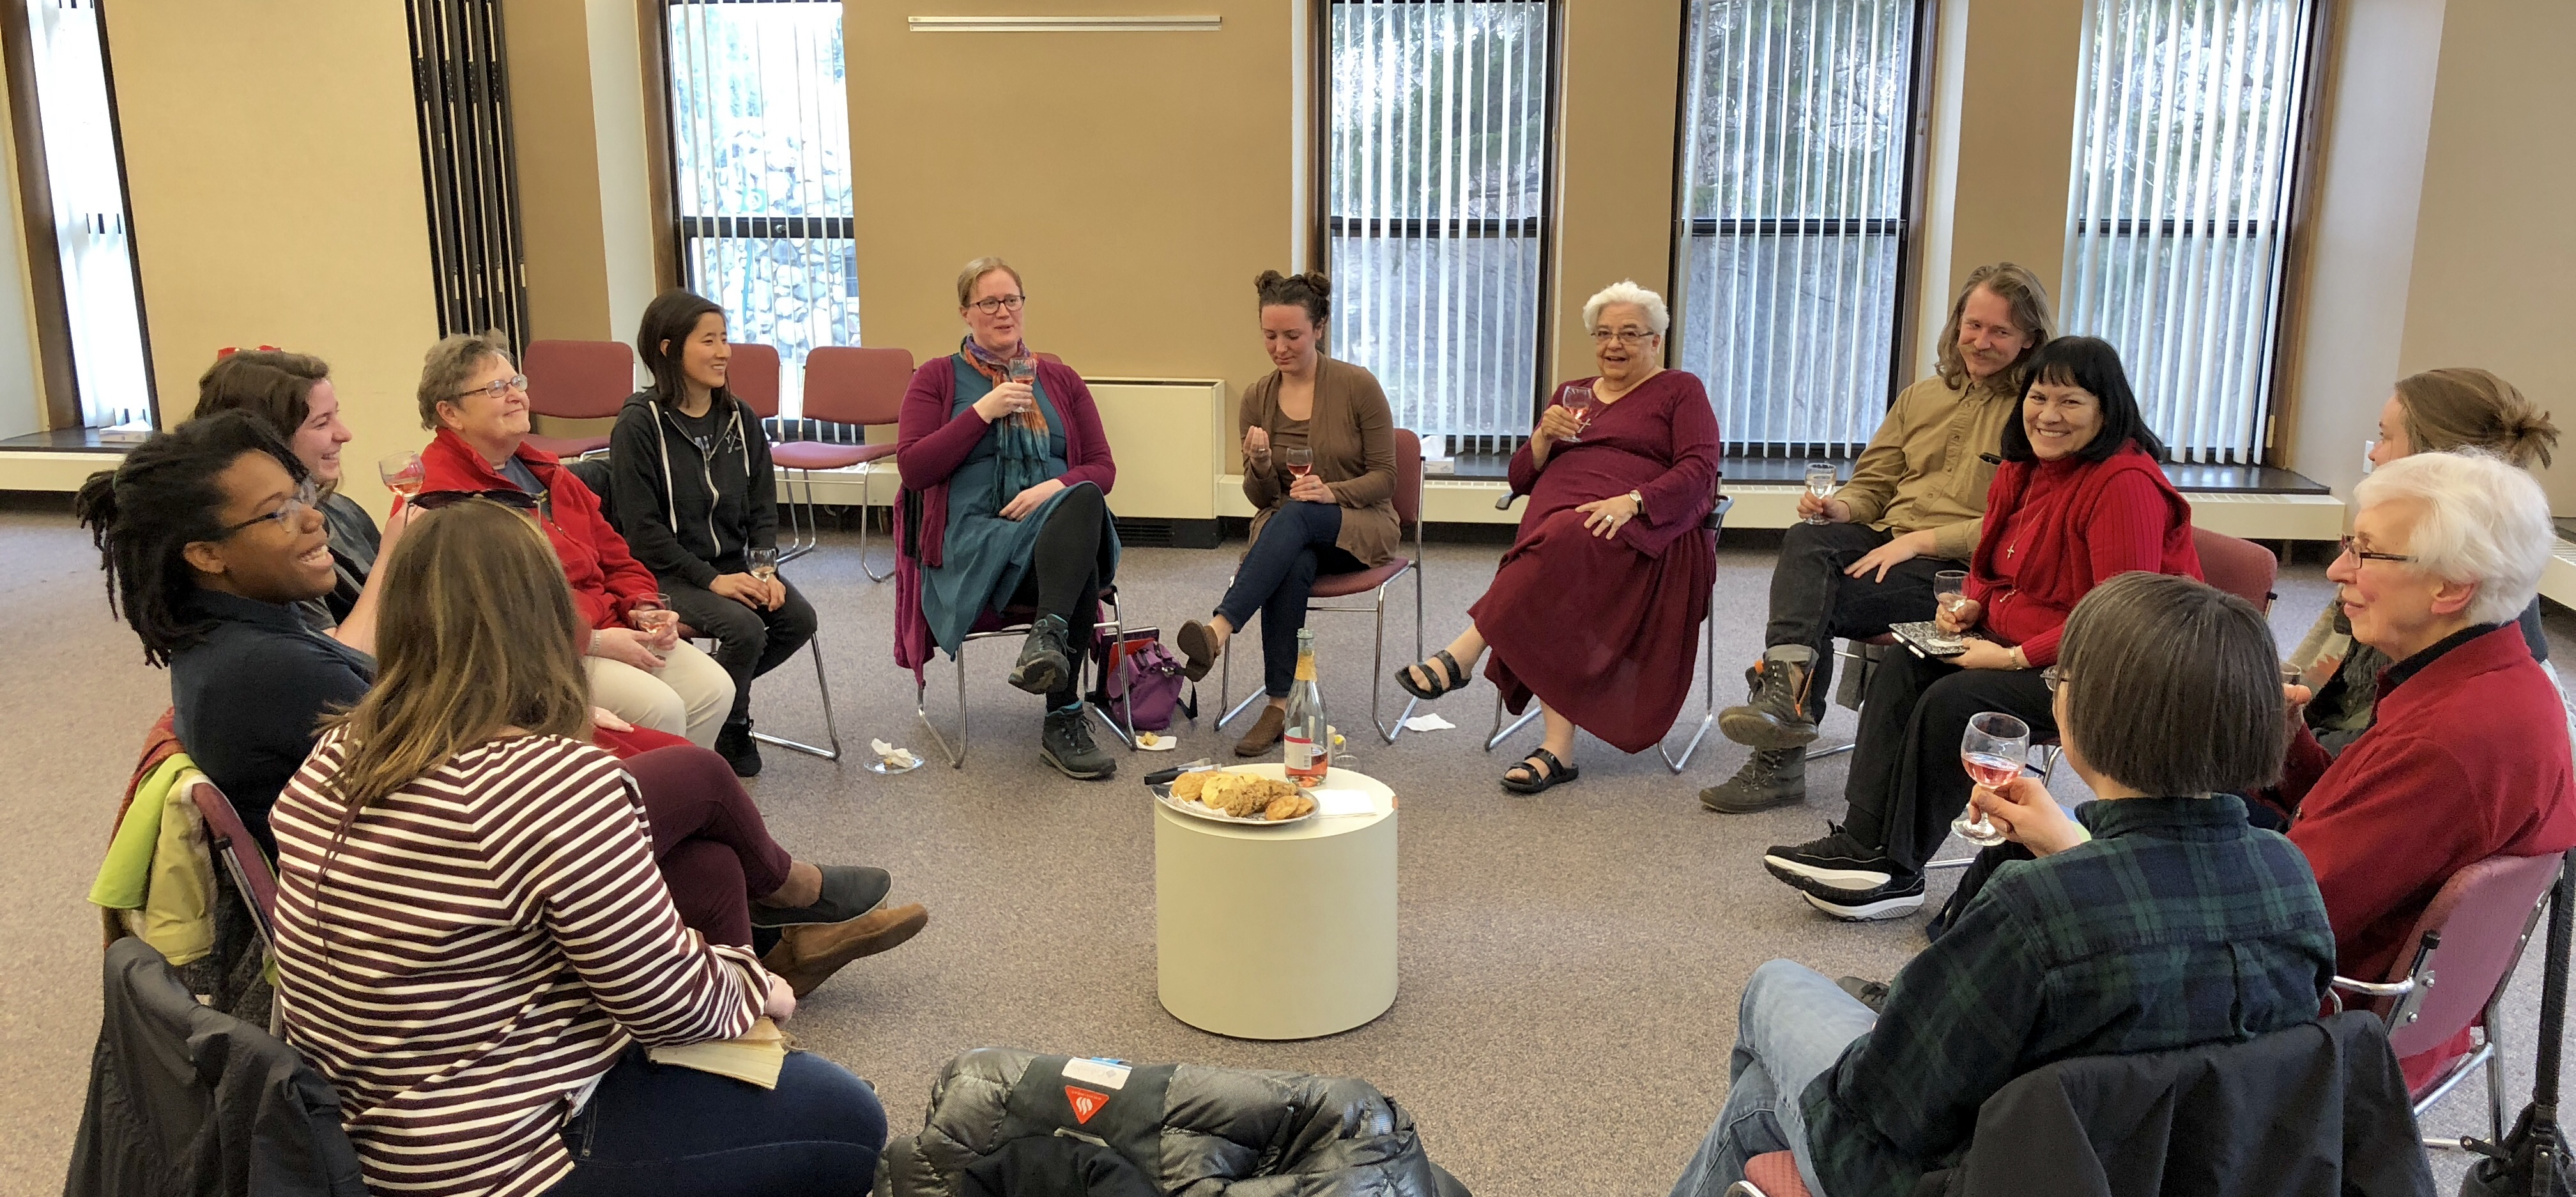 Nuns & Nones attract Millennials at Dominican Center at Marywood